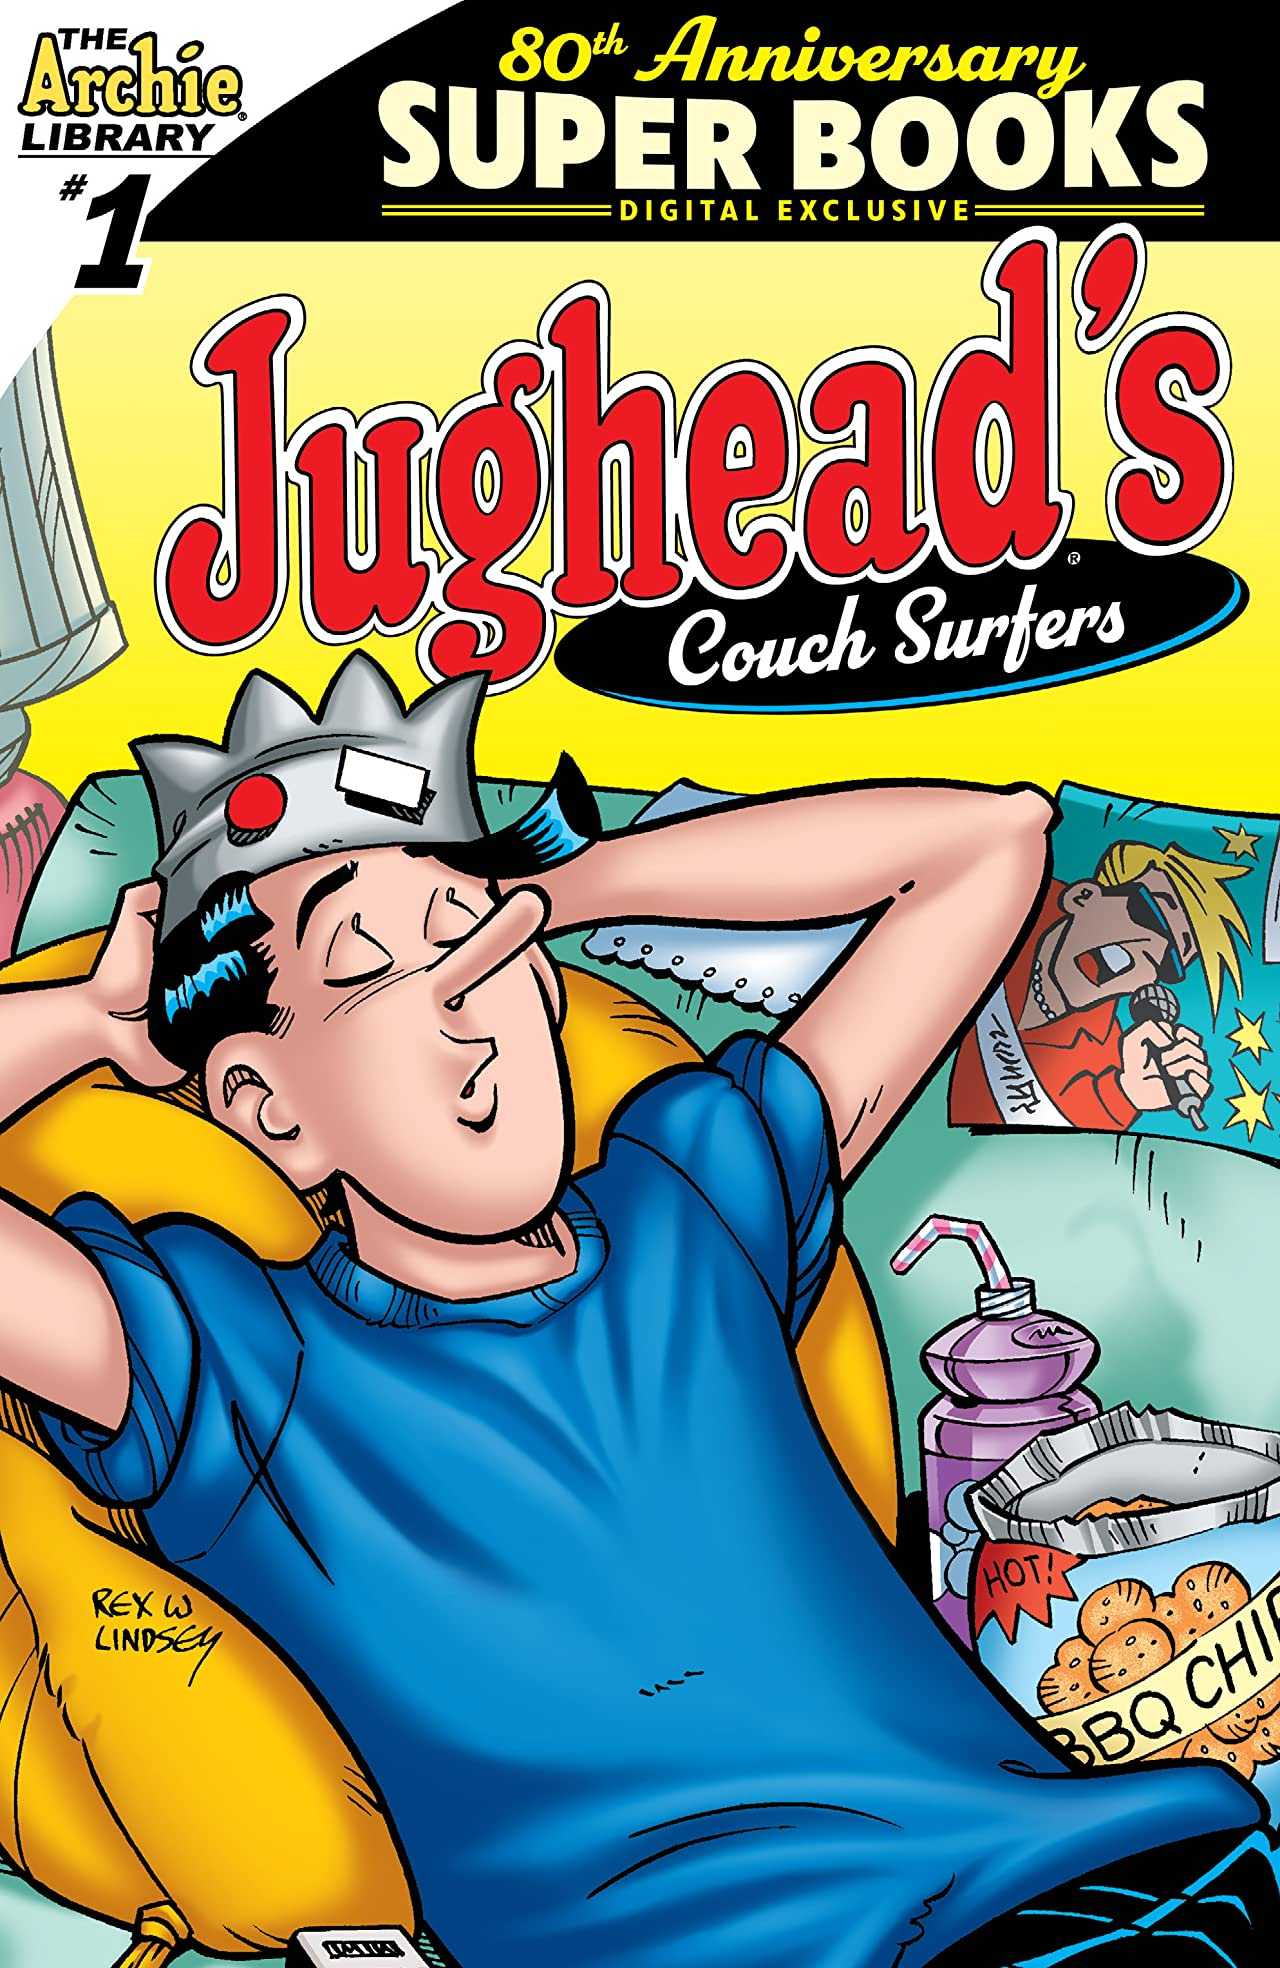 Archie Comics 80th Anniversary Presents: Jughead's Couch Surfers